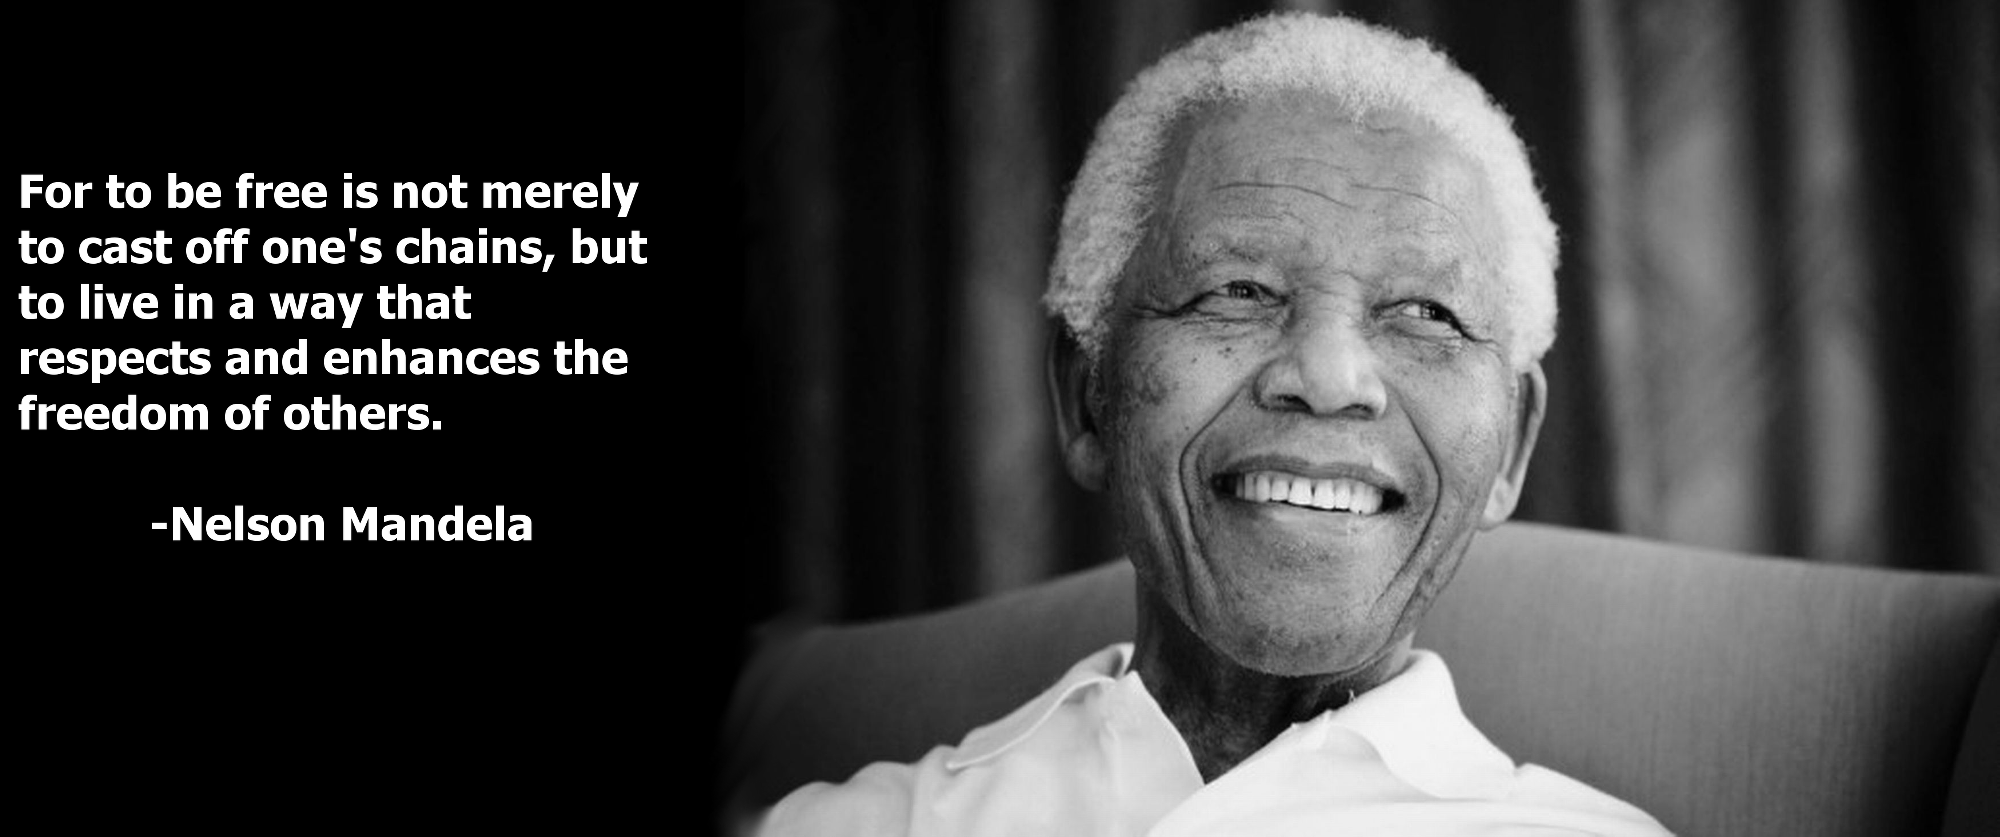 nelson mandela – 8 of the greatest servant leadership quotes and